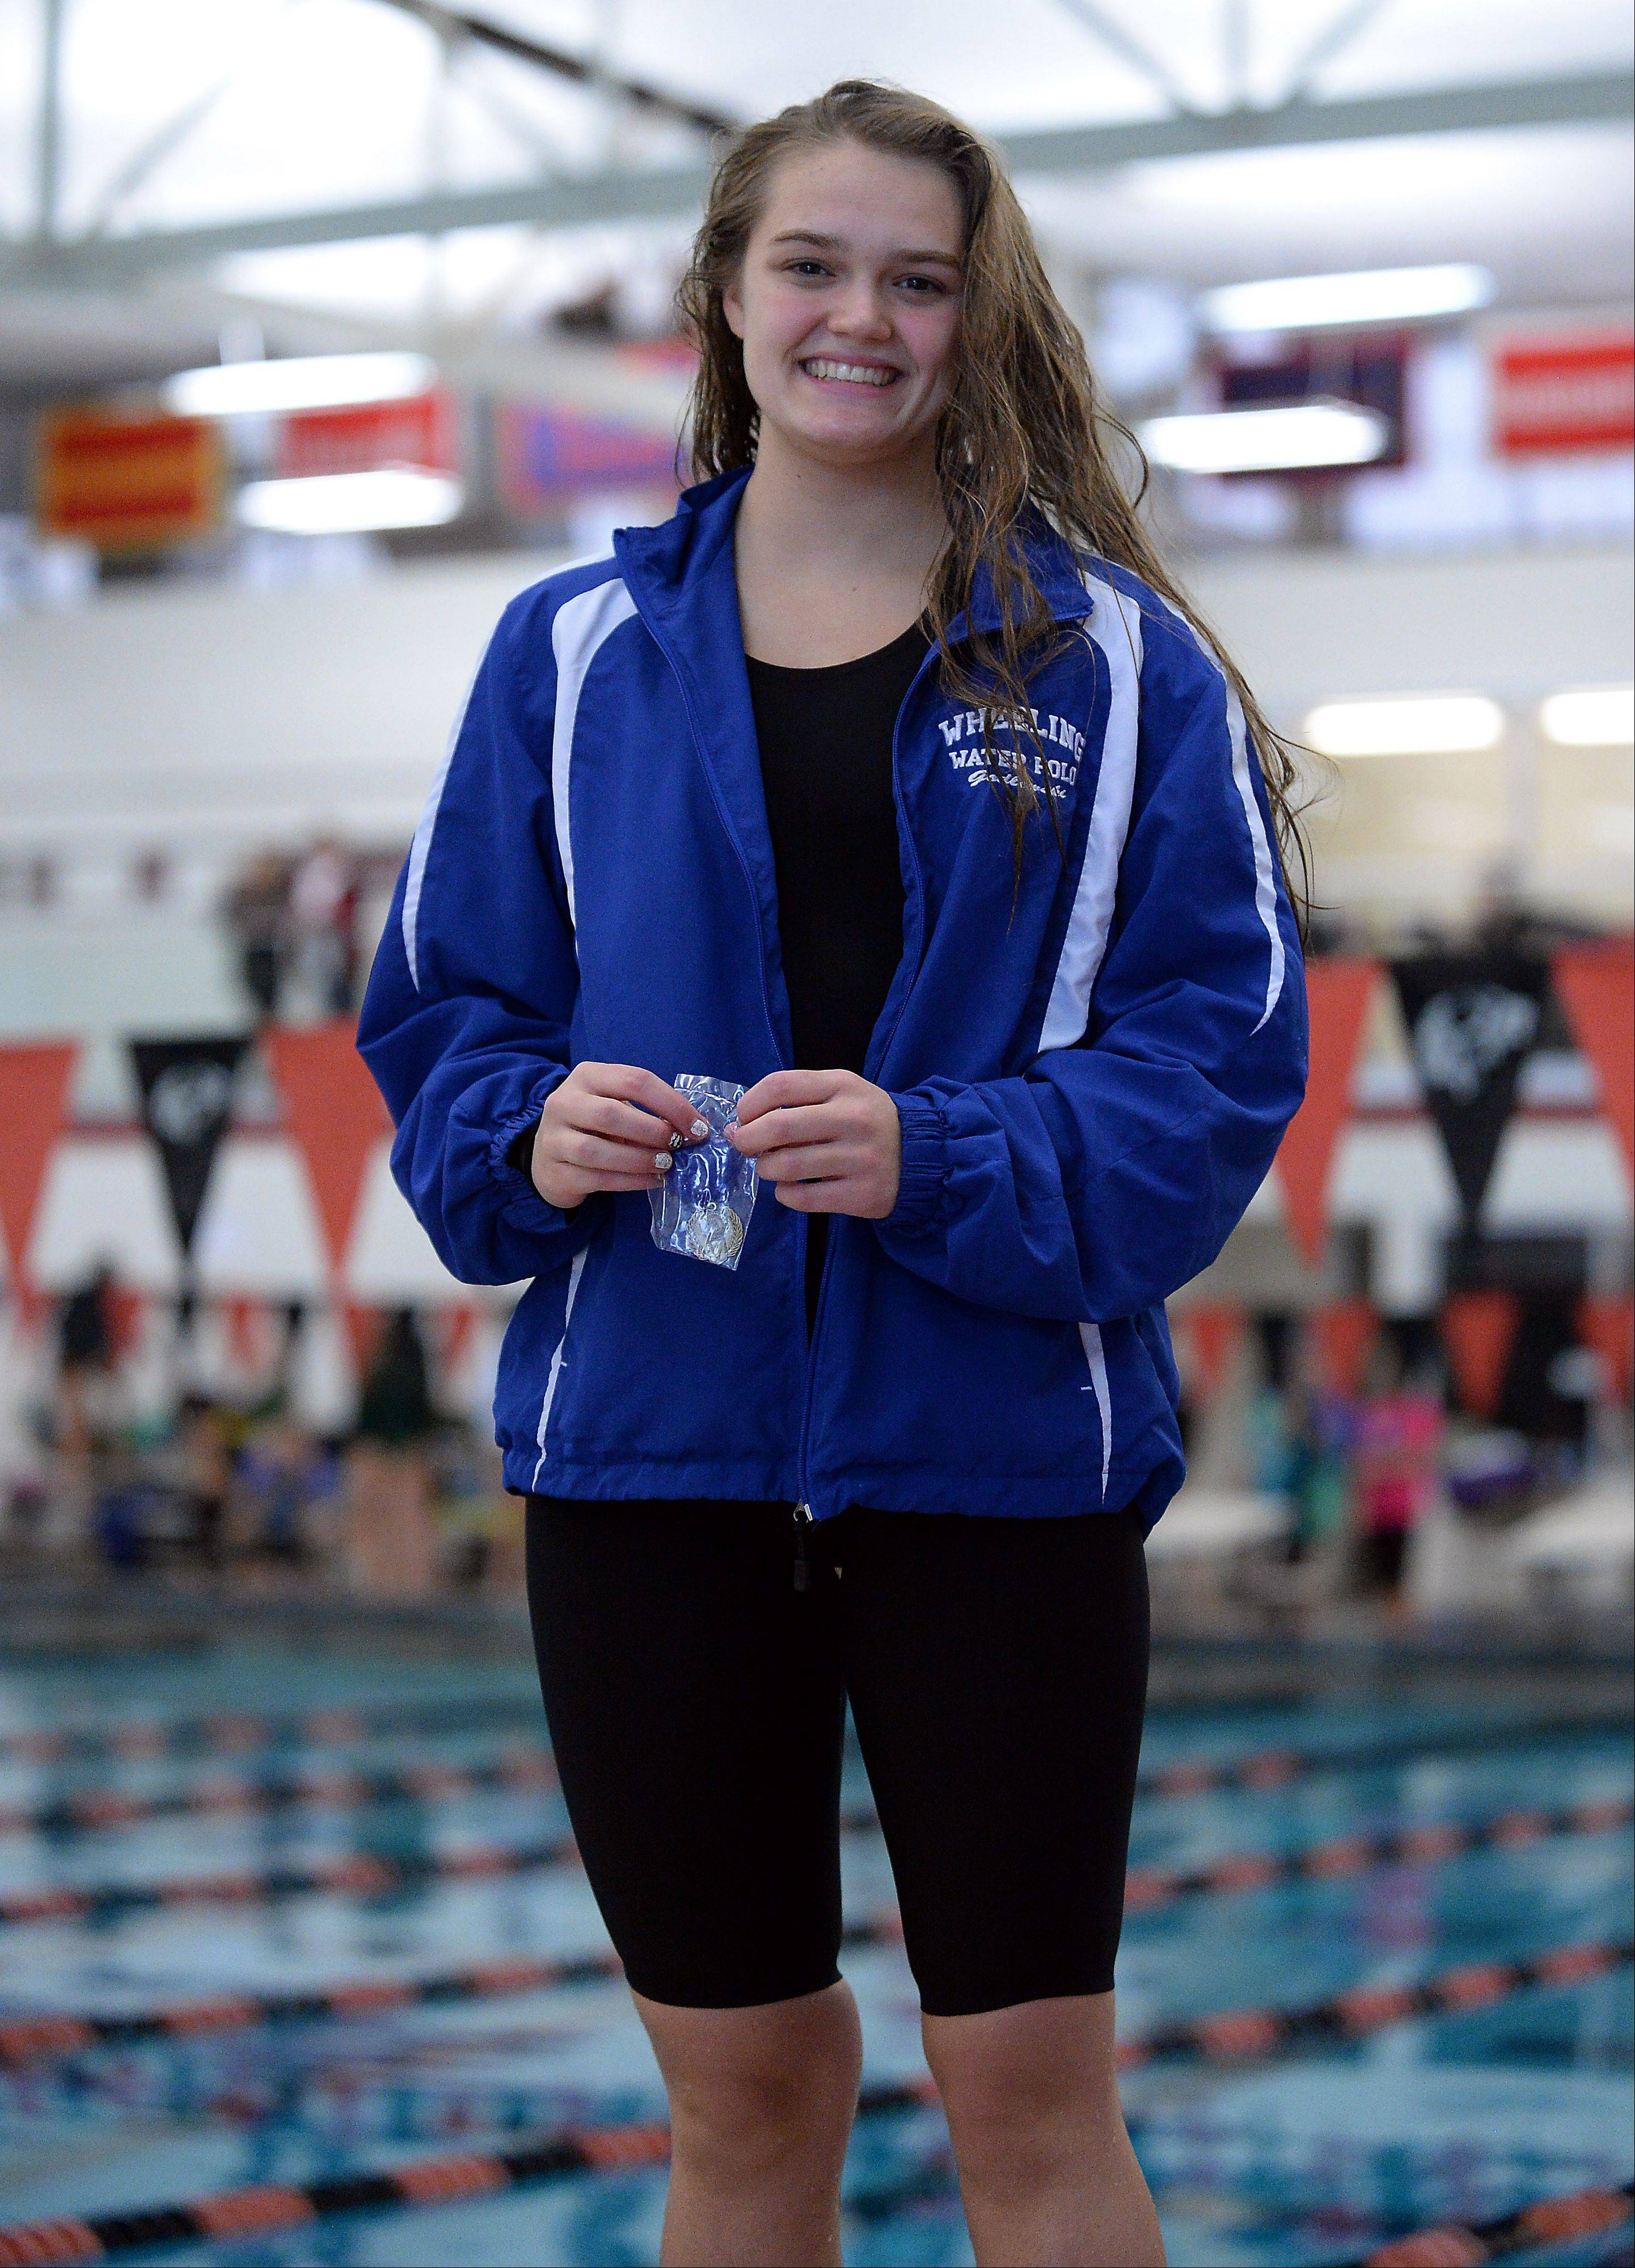 Wheeling's Theresa Godlewski is all smiles after winning the 50-yard freestyle at the Mid-Suburban League championships in Barrington on Saturday.